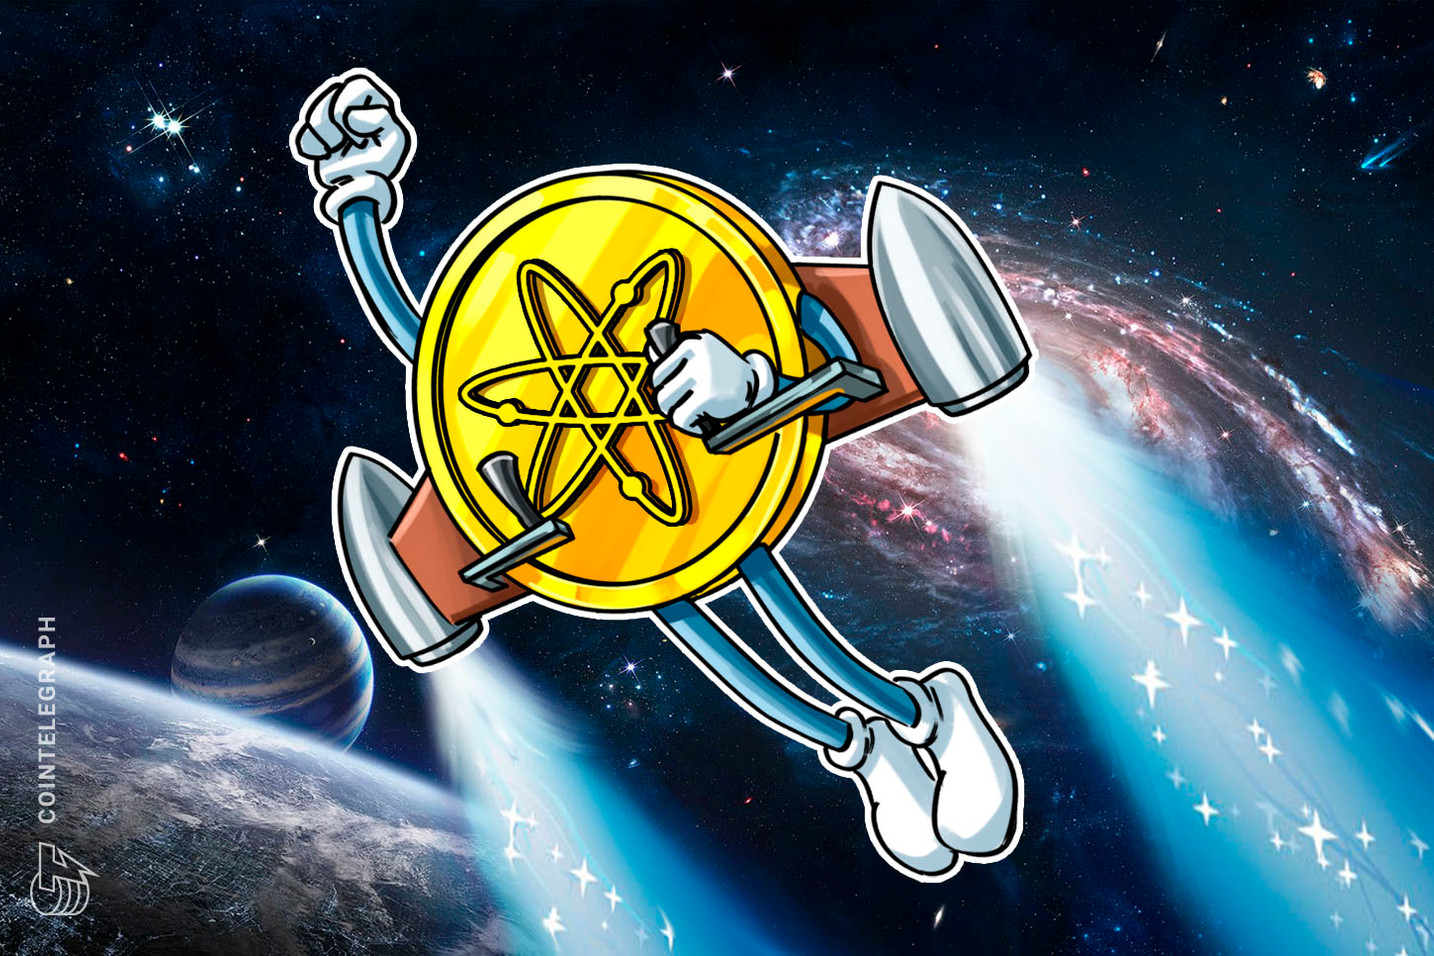 ATOM rallies 100% in a week: What's behind the rerating of Cosmos?